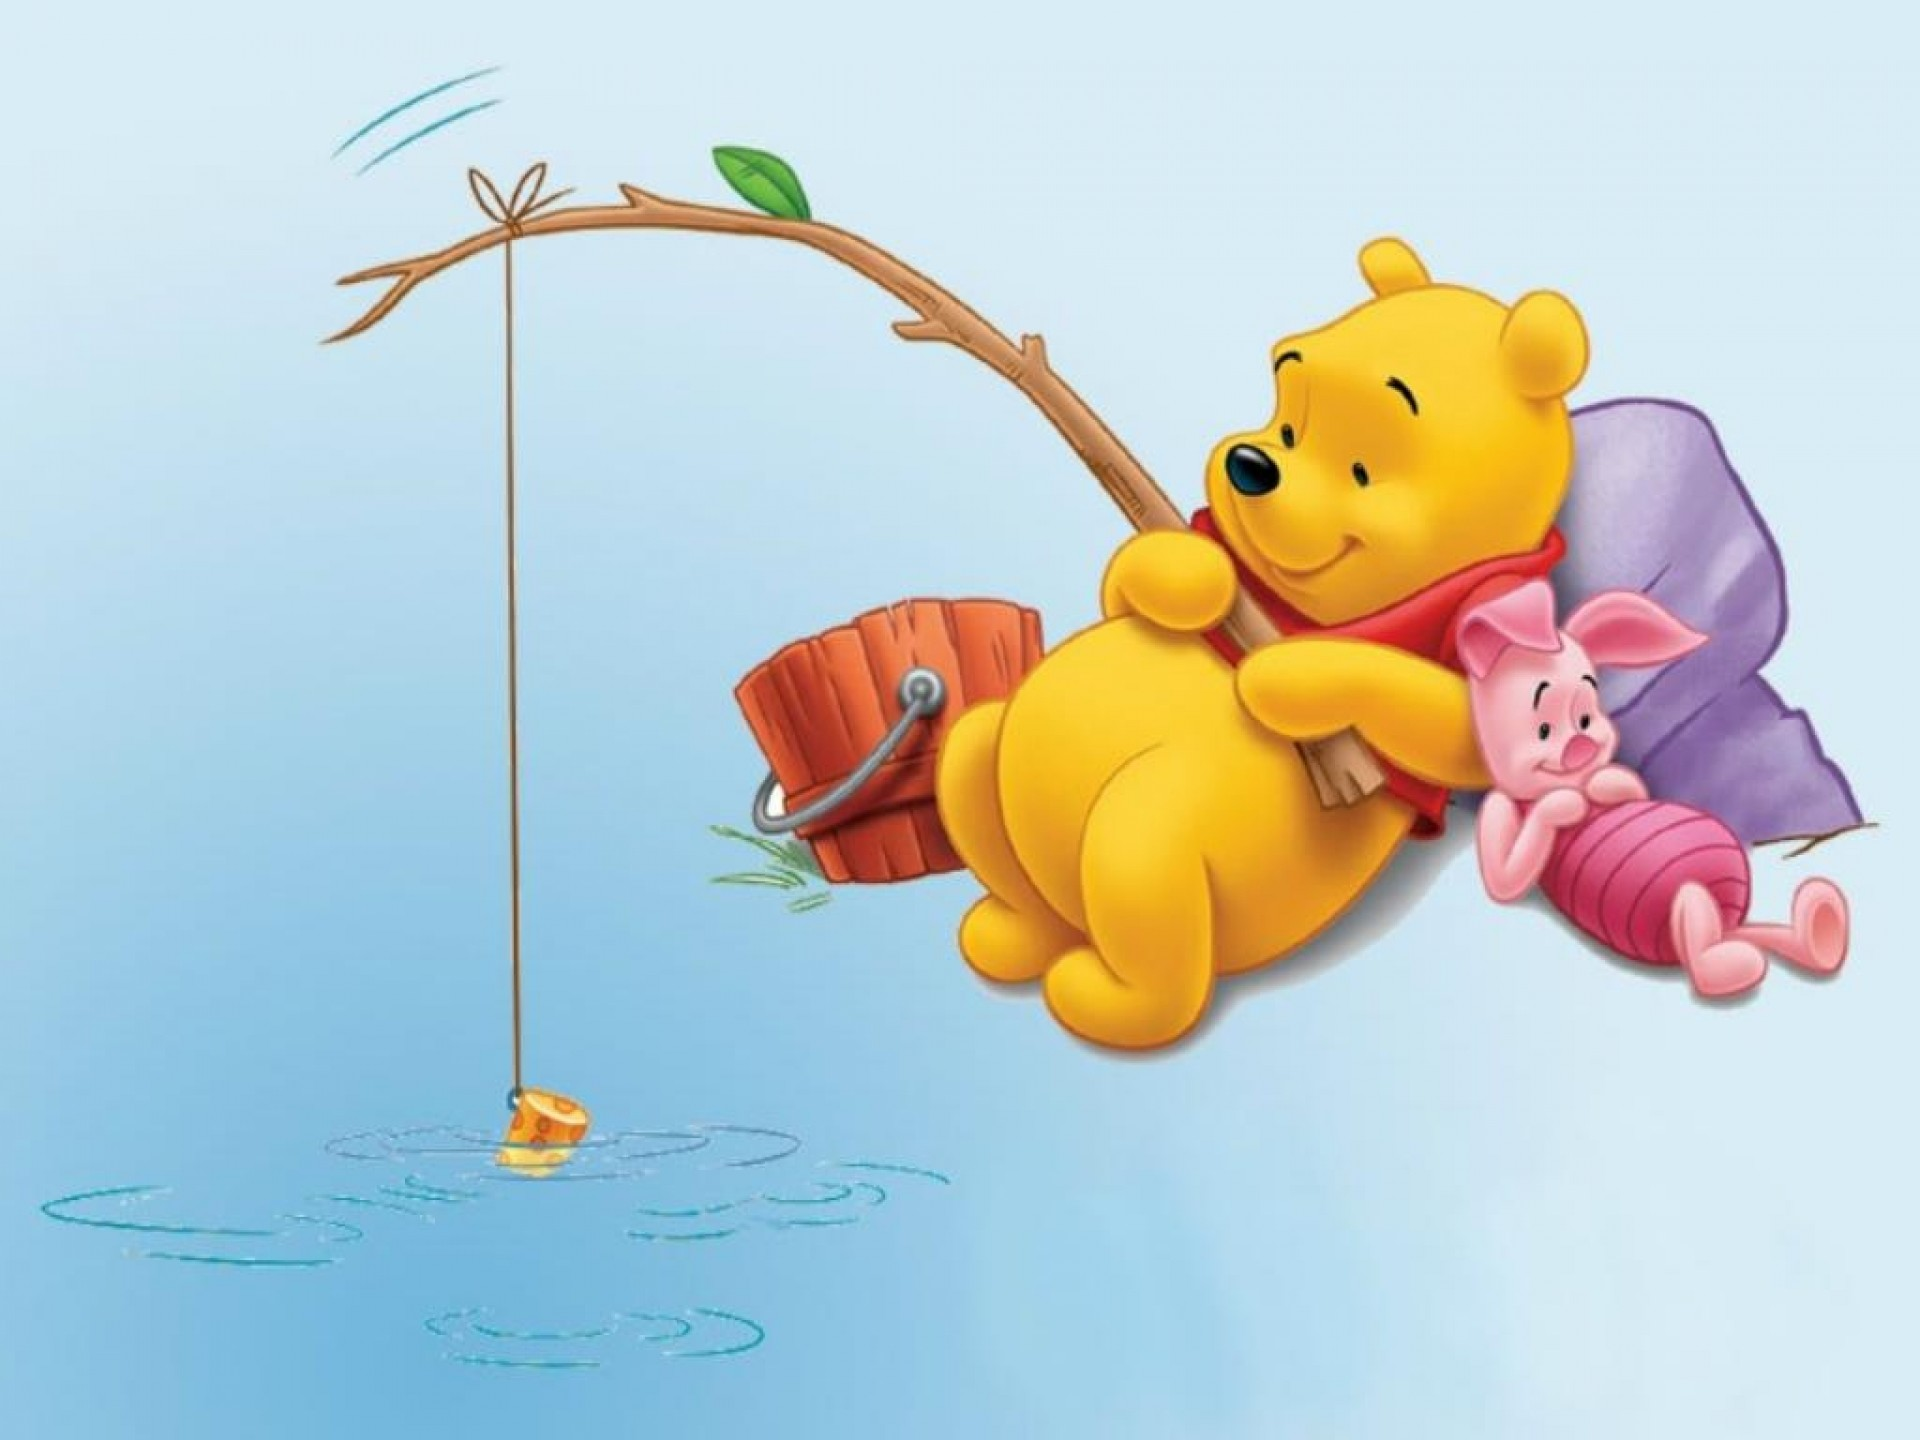 Beautiful Wallpaper Halloween Winnie The Pooh - 639926-wallpaper-pooh-bear-1920x1440-for-1080p  2018_553770.jpg